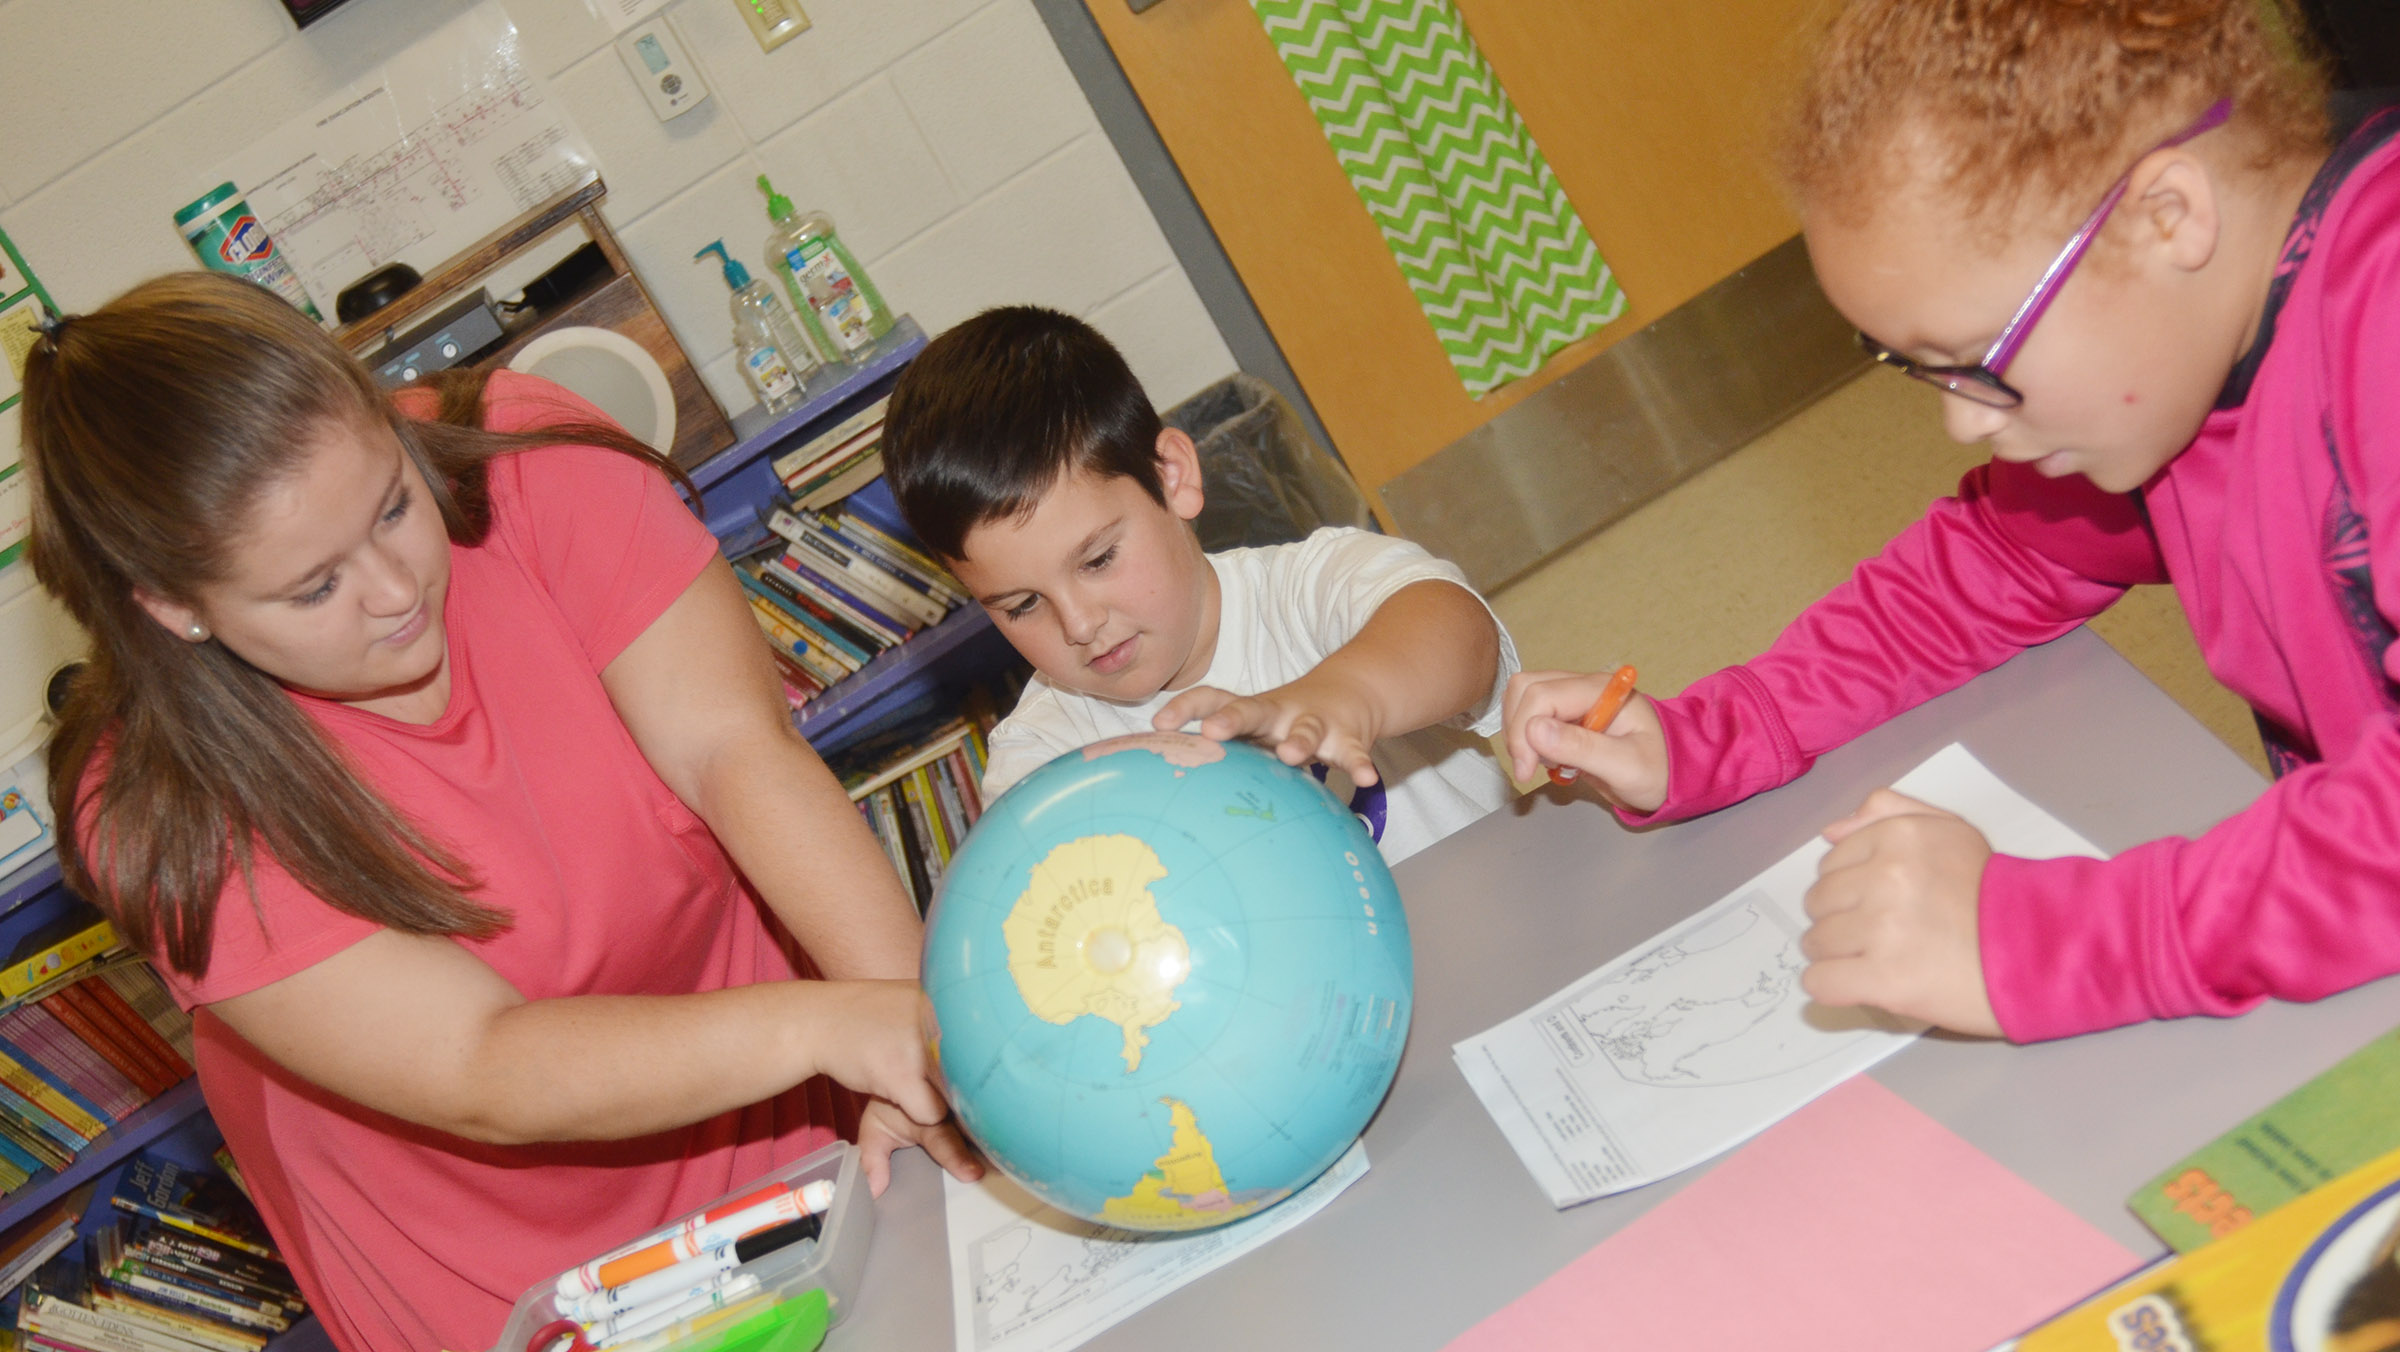 Campbellsville University education student Jordan Bray helps third-grader Damien Clark find the continents on a globe, as his classmate Kallie Taylor works to identify them on her worksheet.